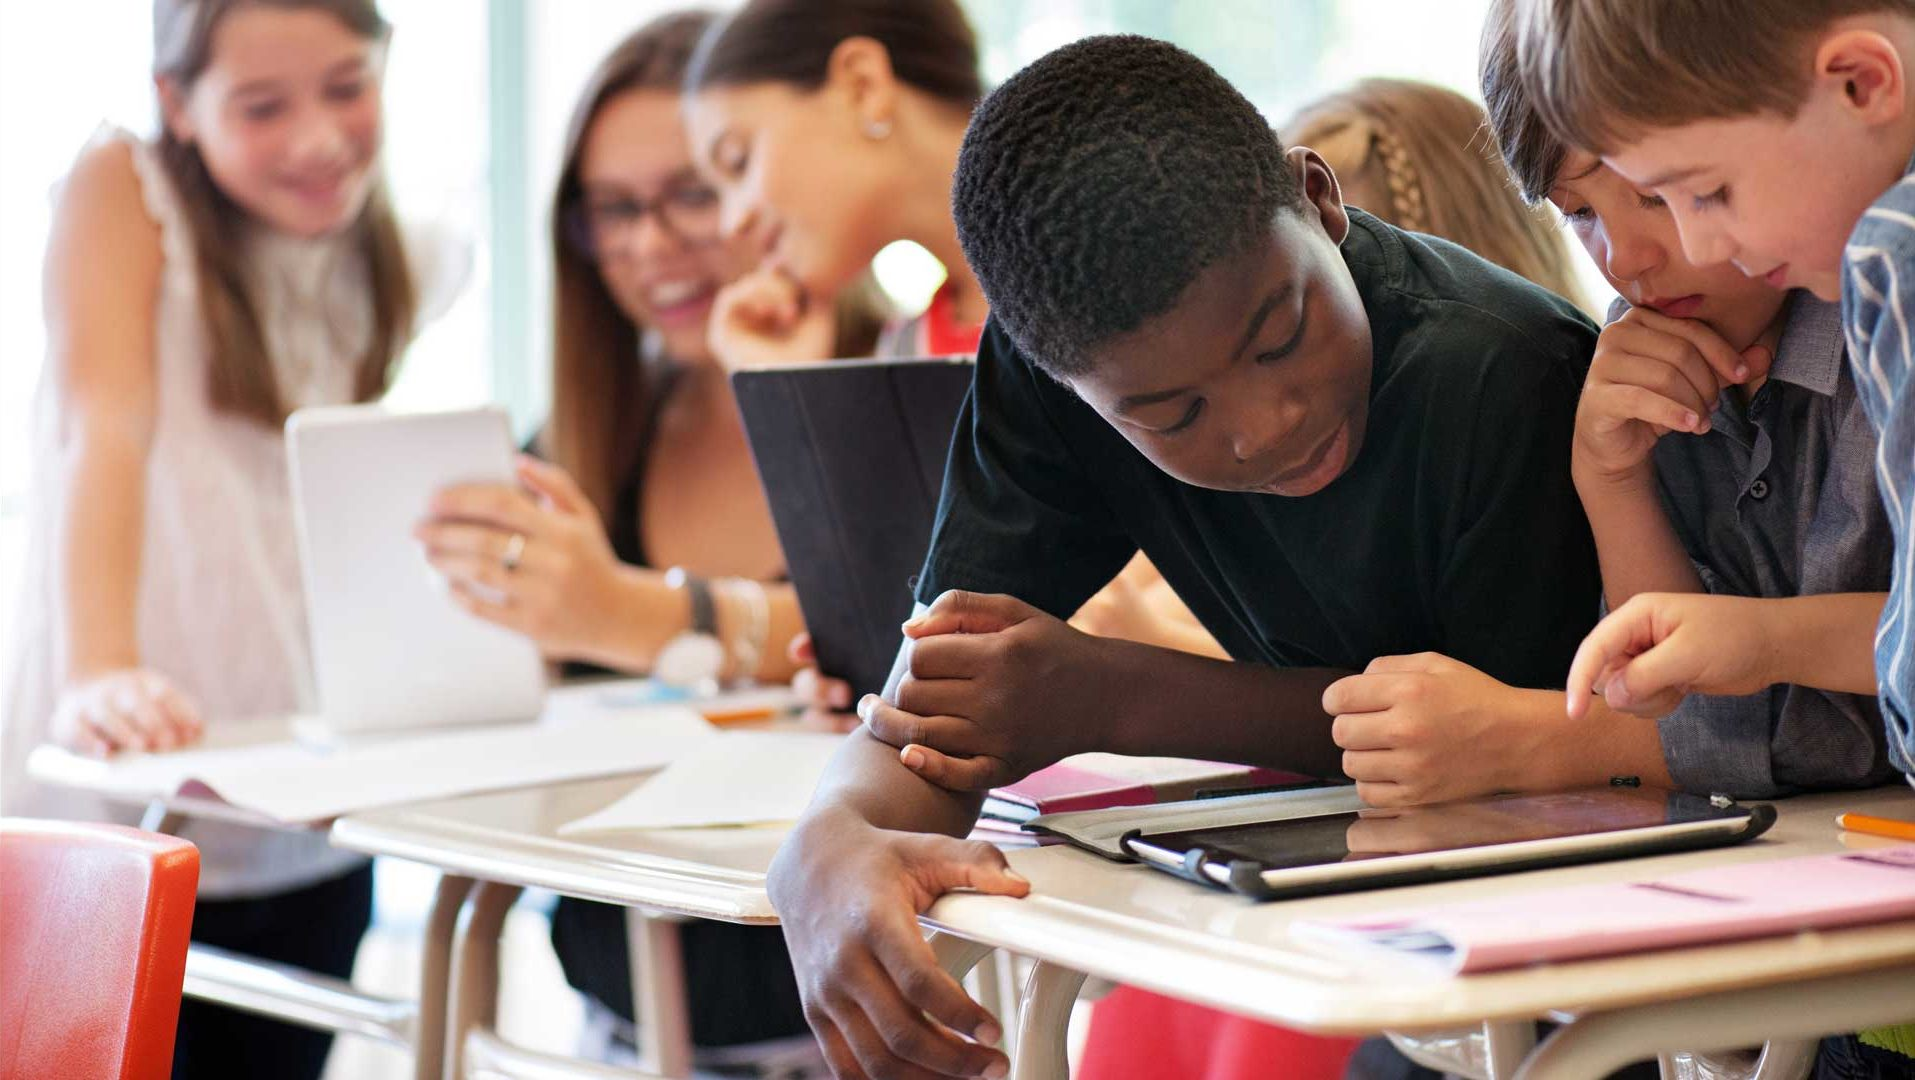 Should schools provide a laptop and Internet access for all students?